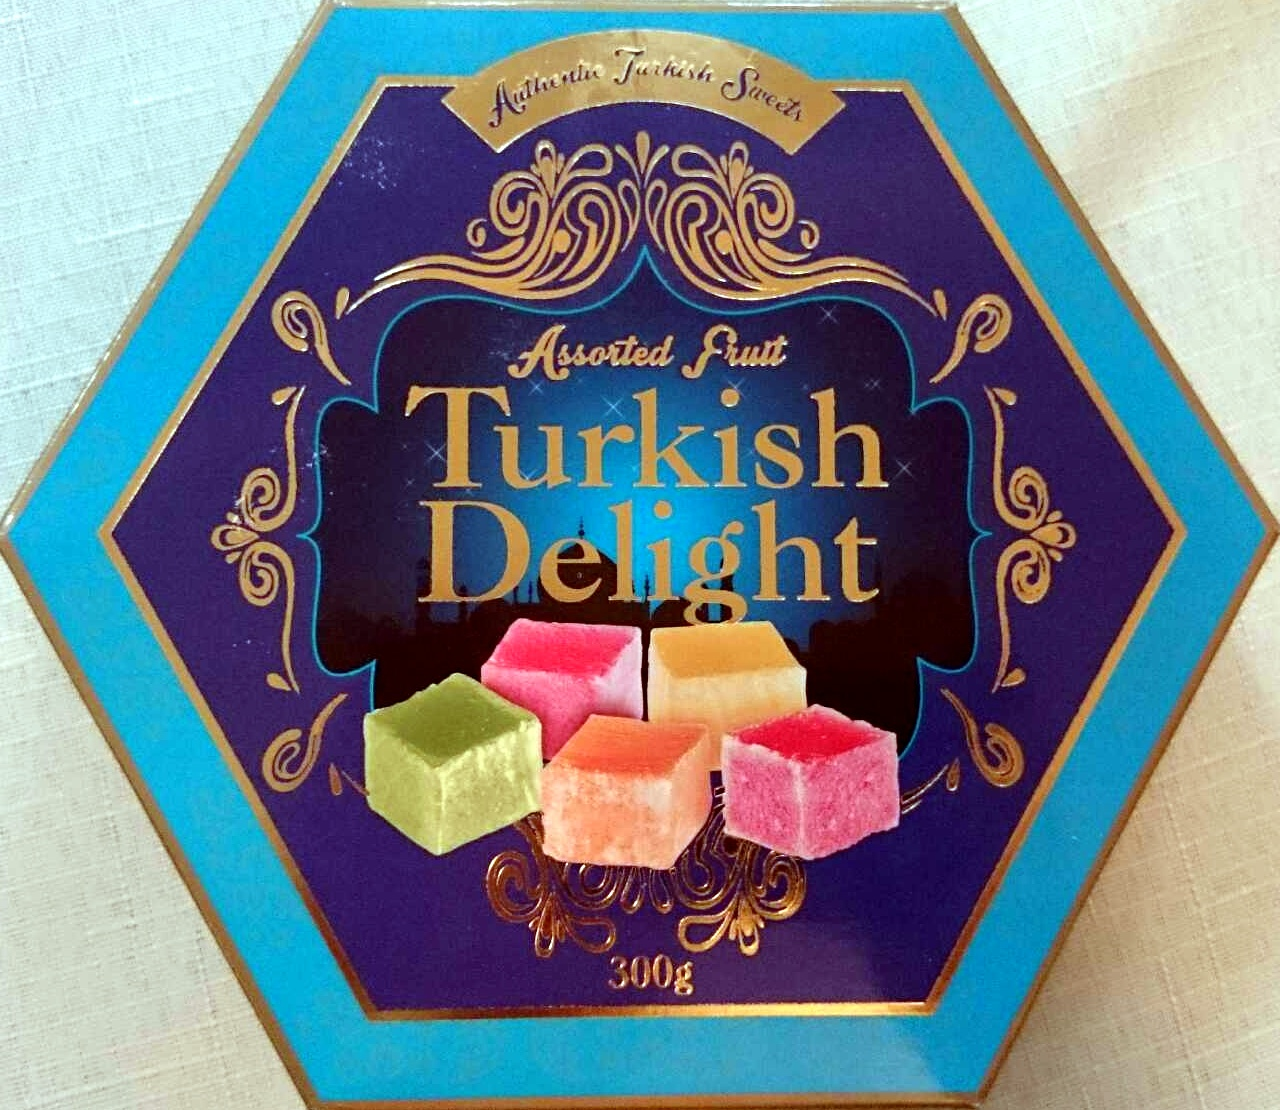 Assorted Fruit Turkish Delight - Product